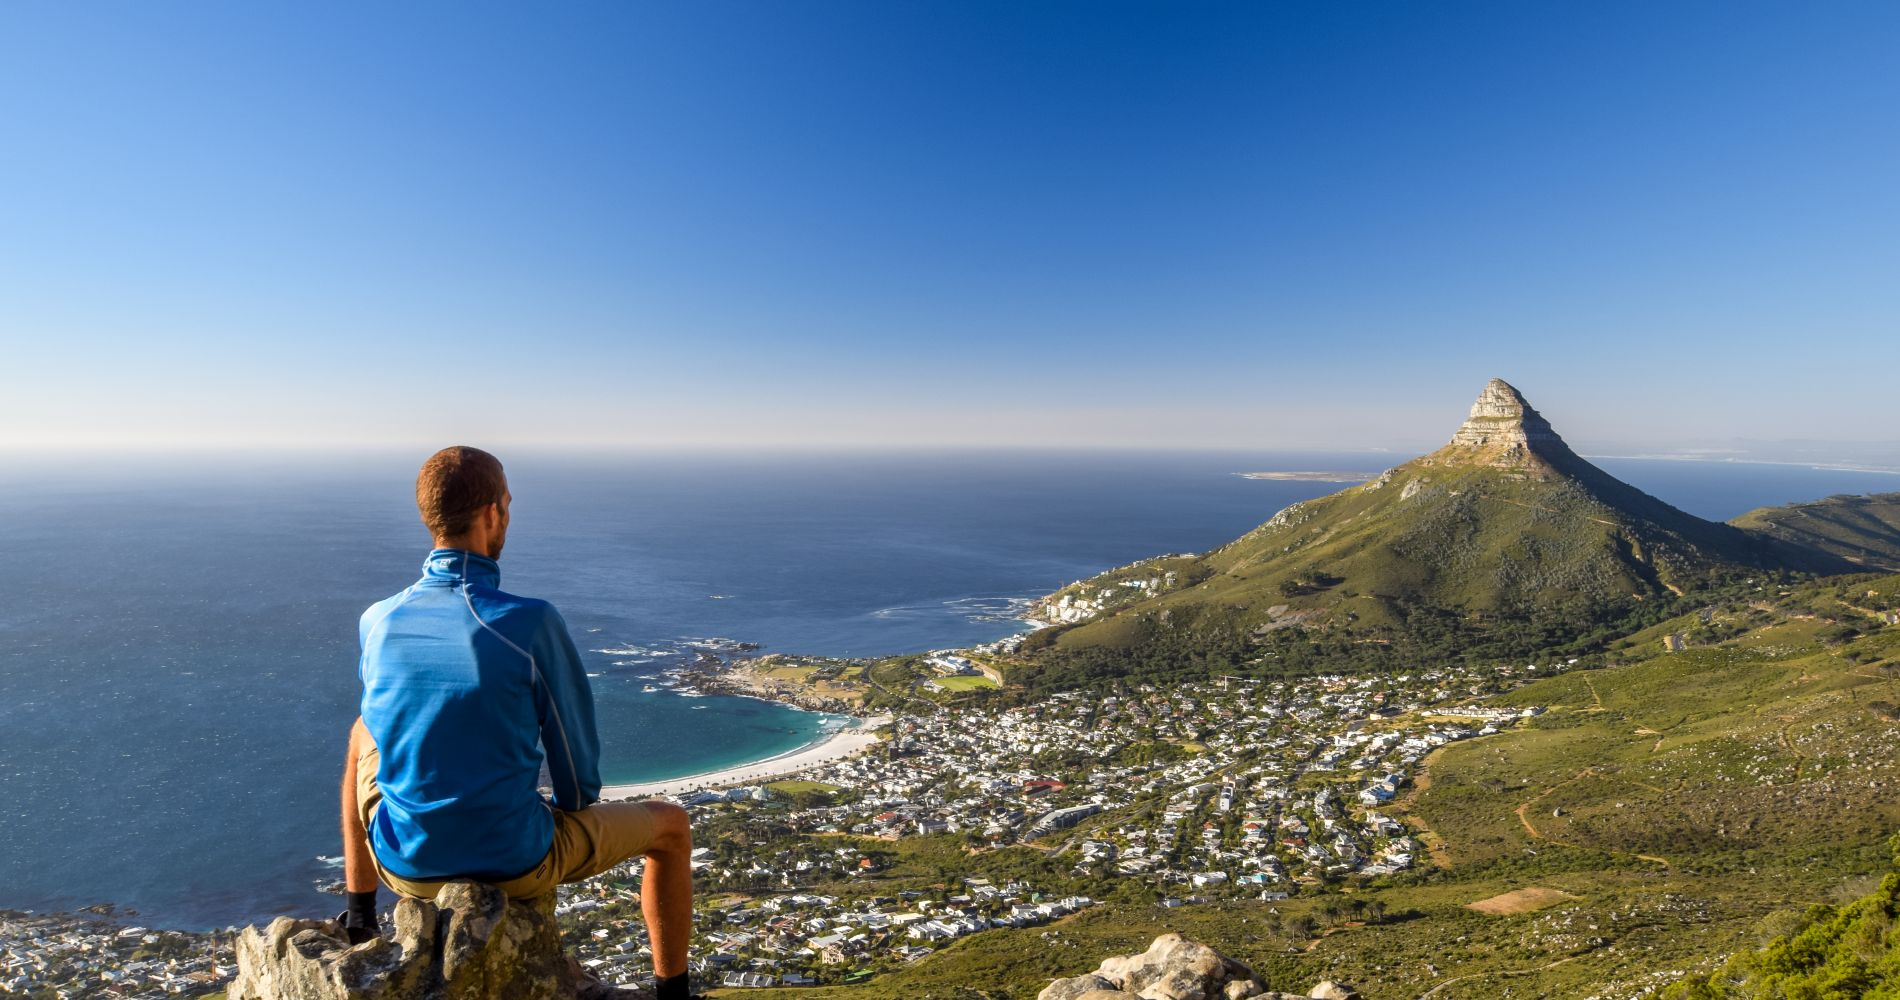 Table Mountain Hike-India Venster Route in Cape Town for Two